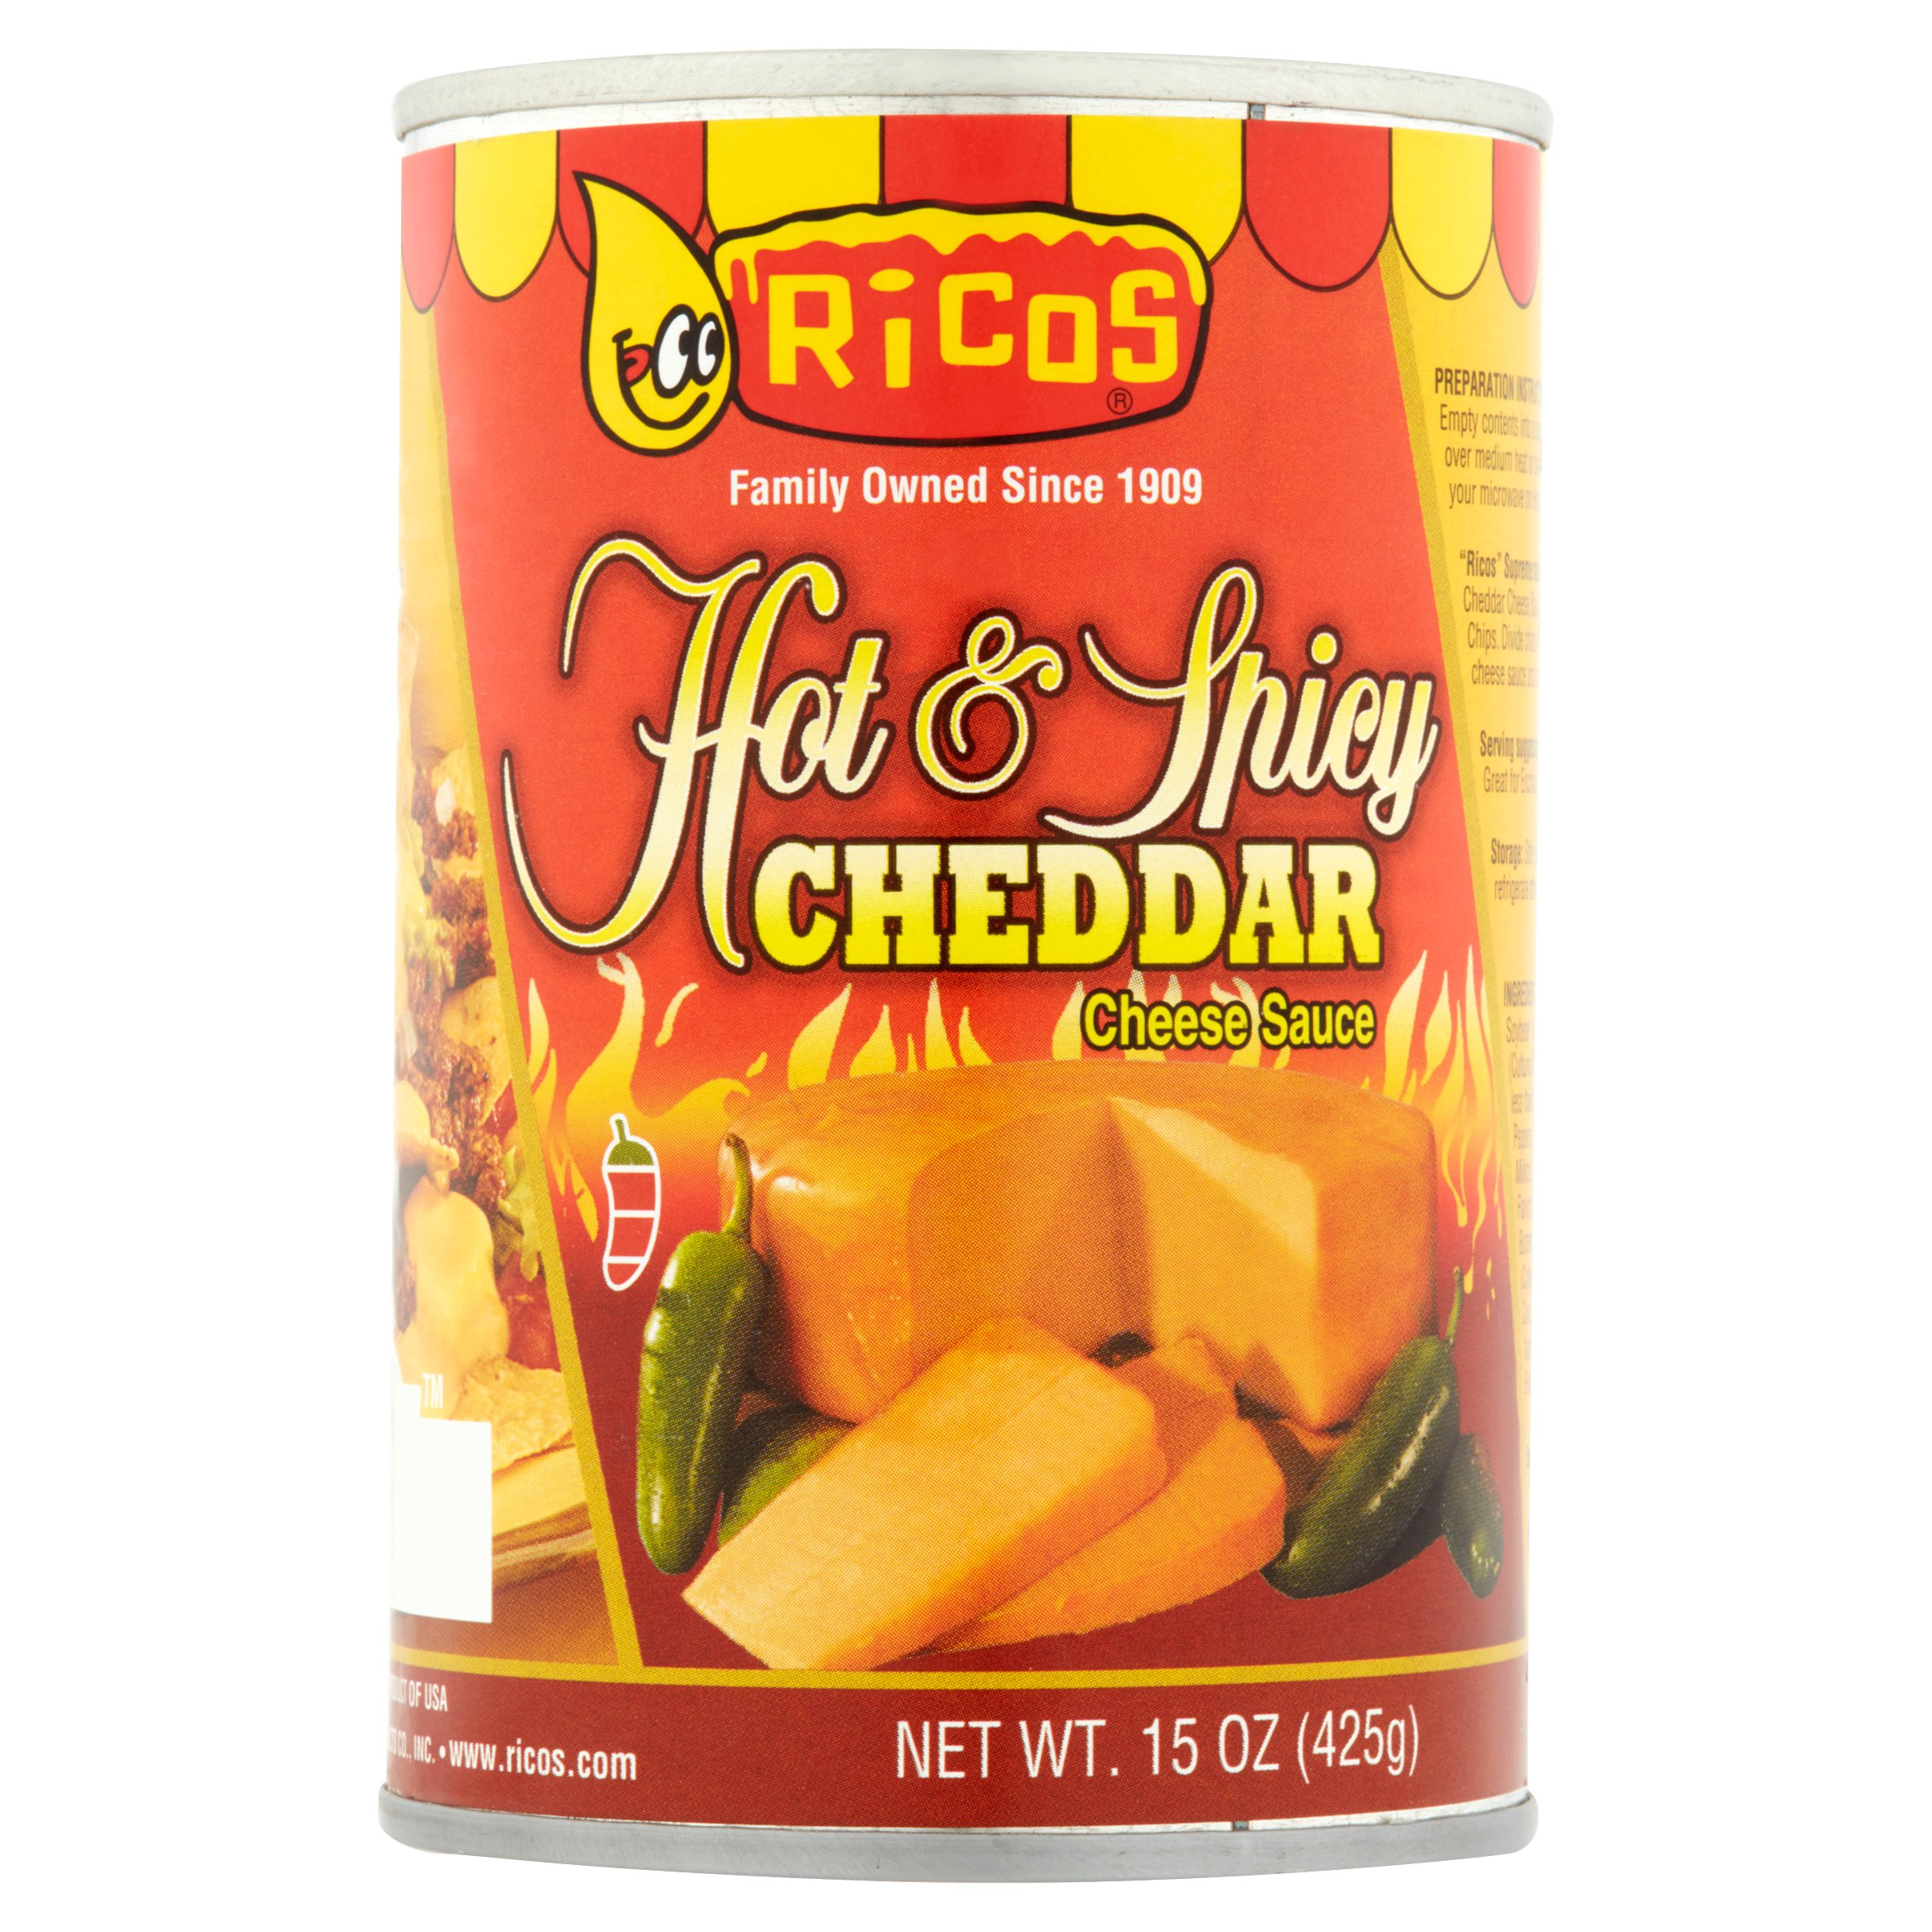 Ricos Hot & Spicy Cheddar Cheese Sauce, 15.0 OZ by Ricos Products Co., Inc.